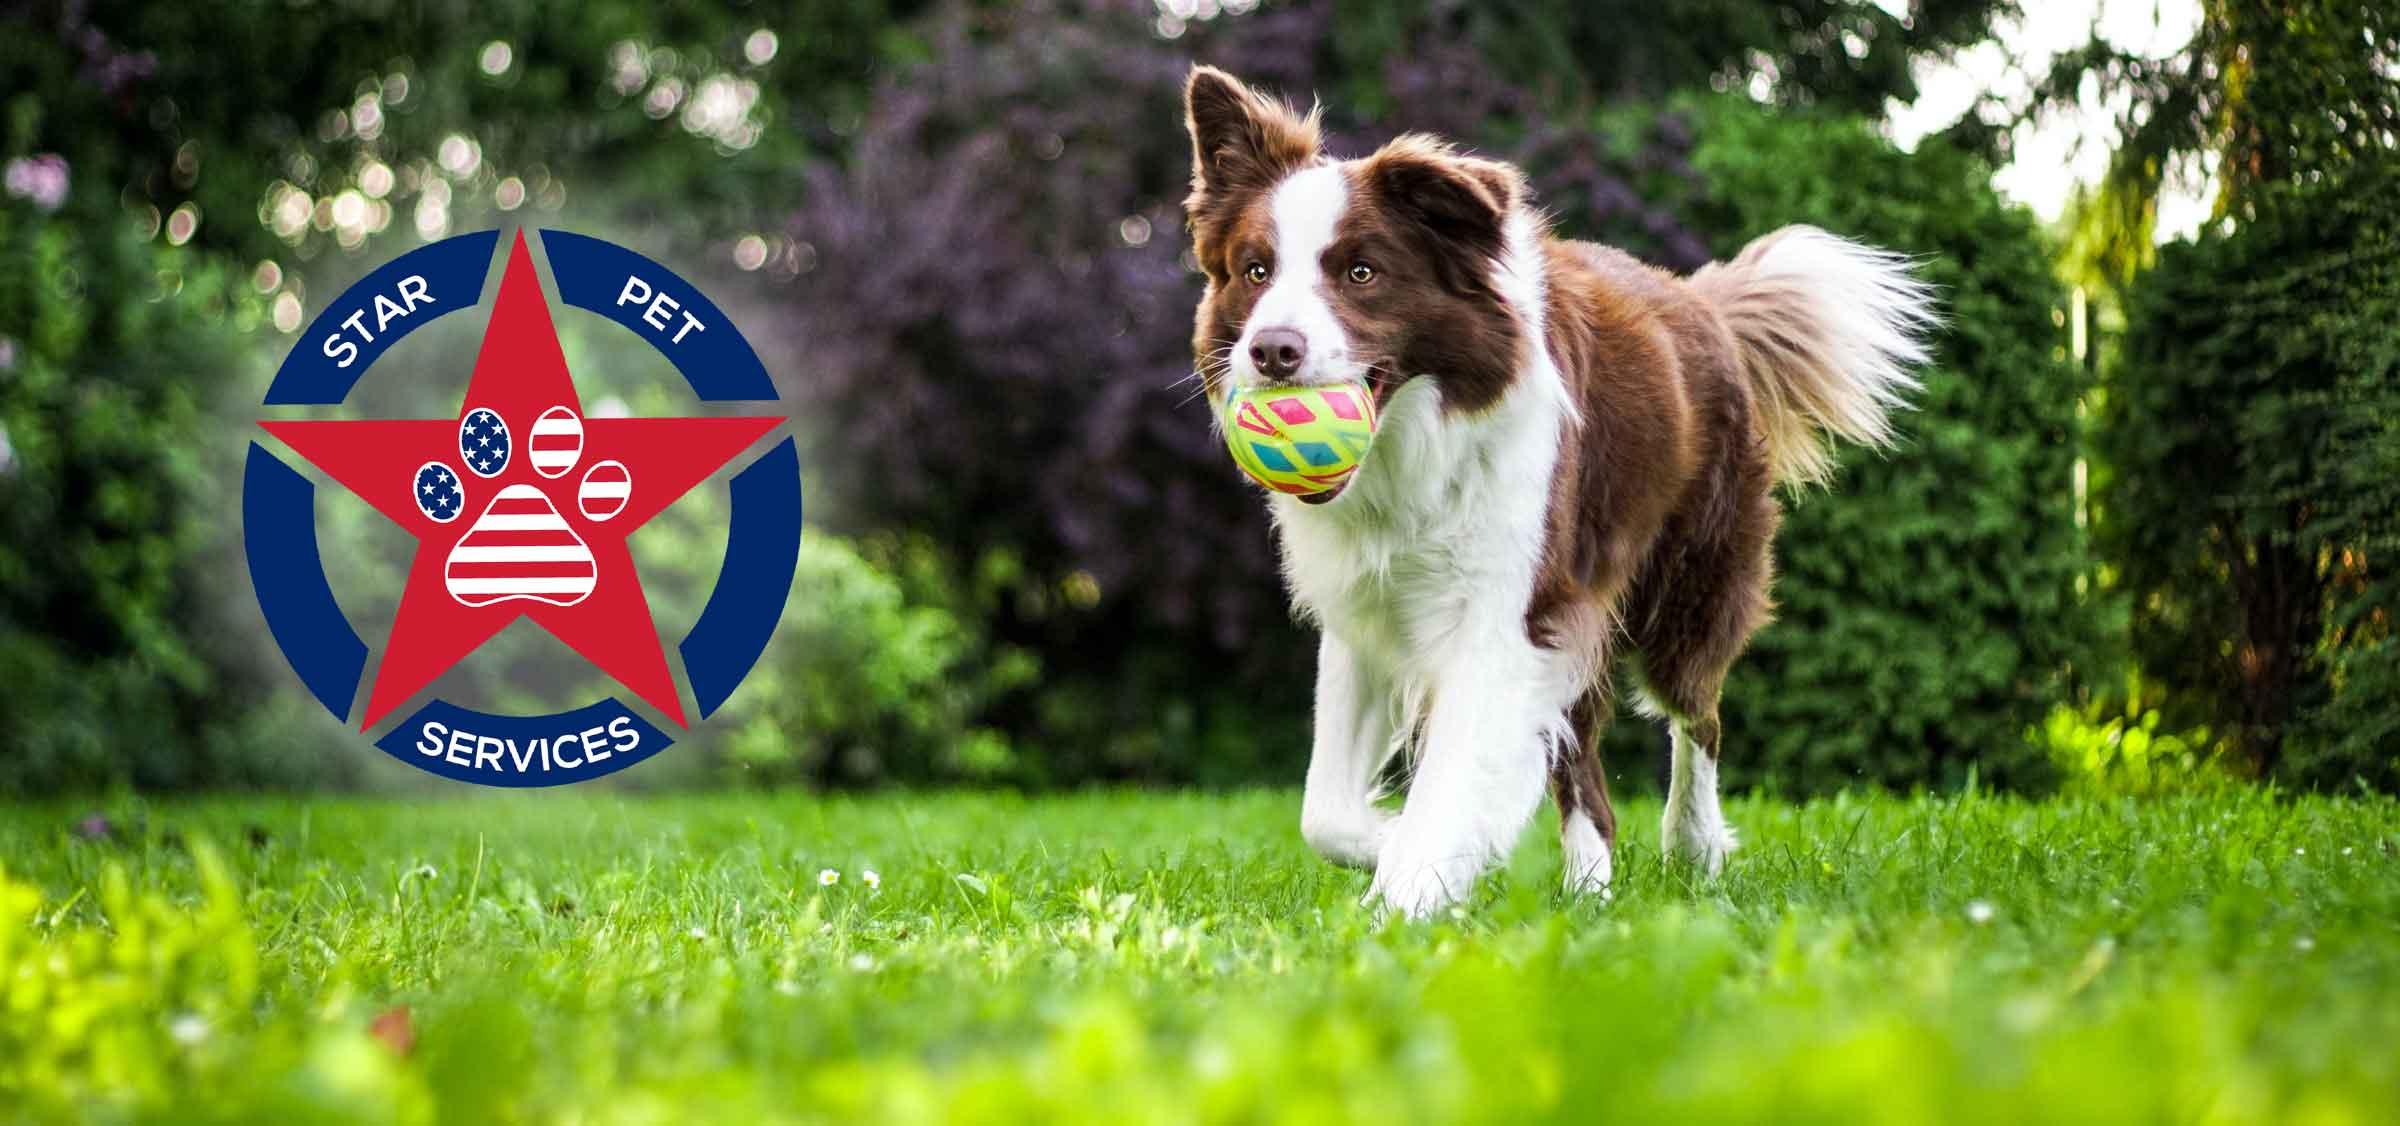 Star Pet Service provides clean fresh yards